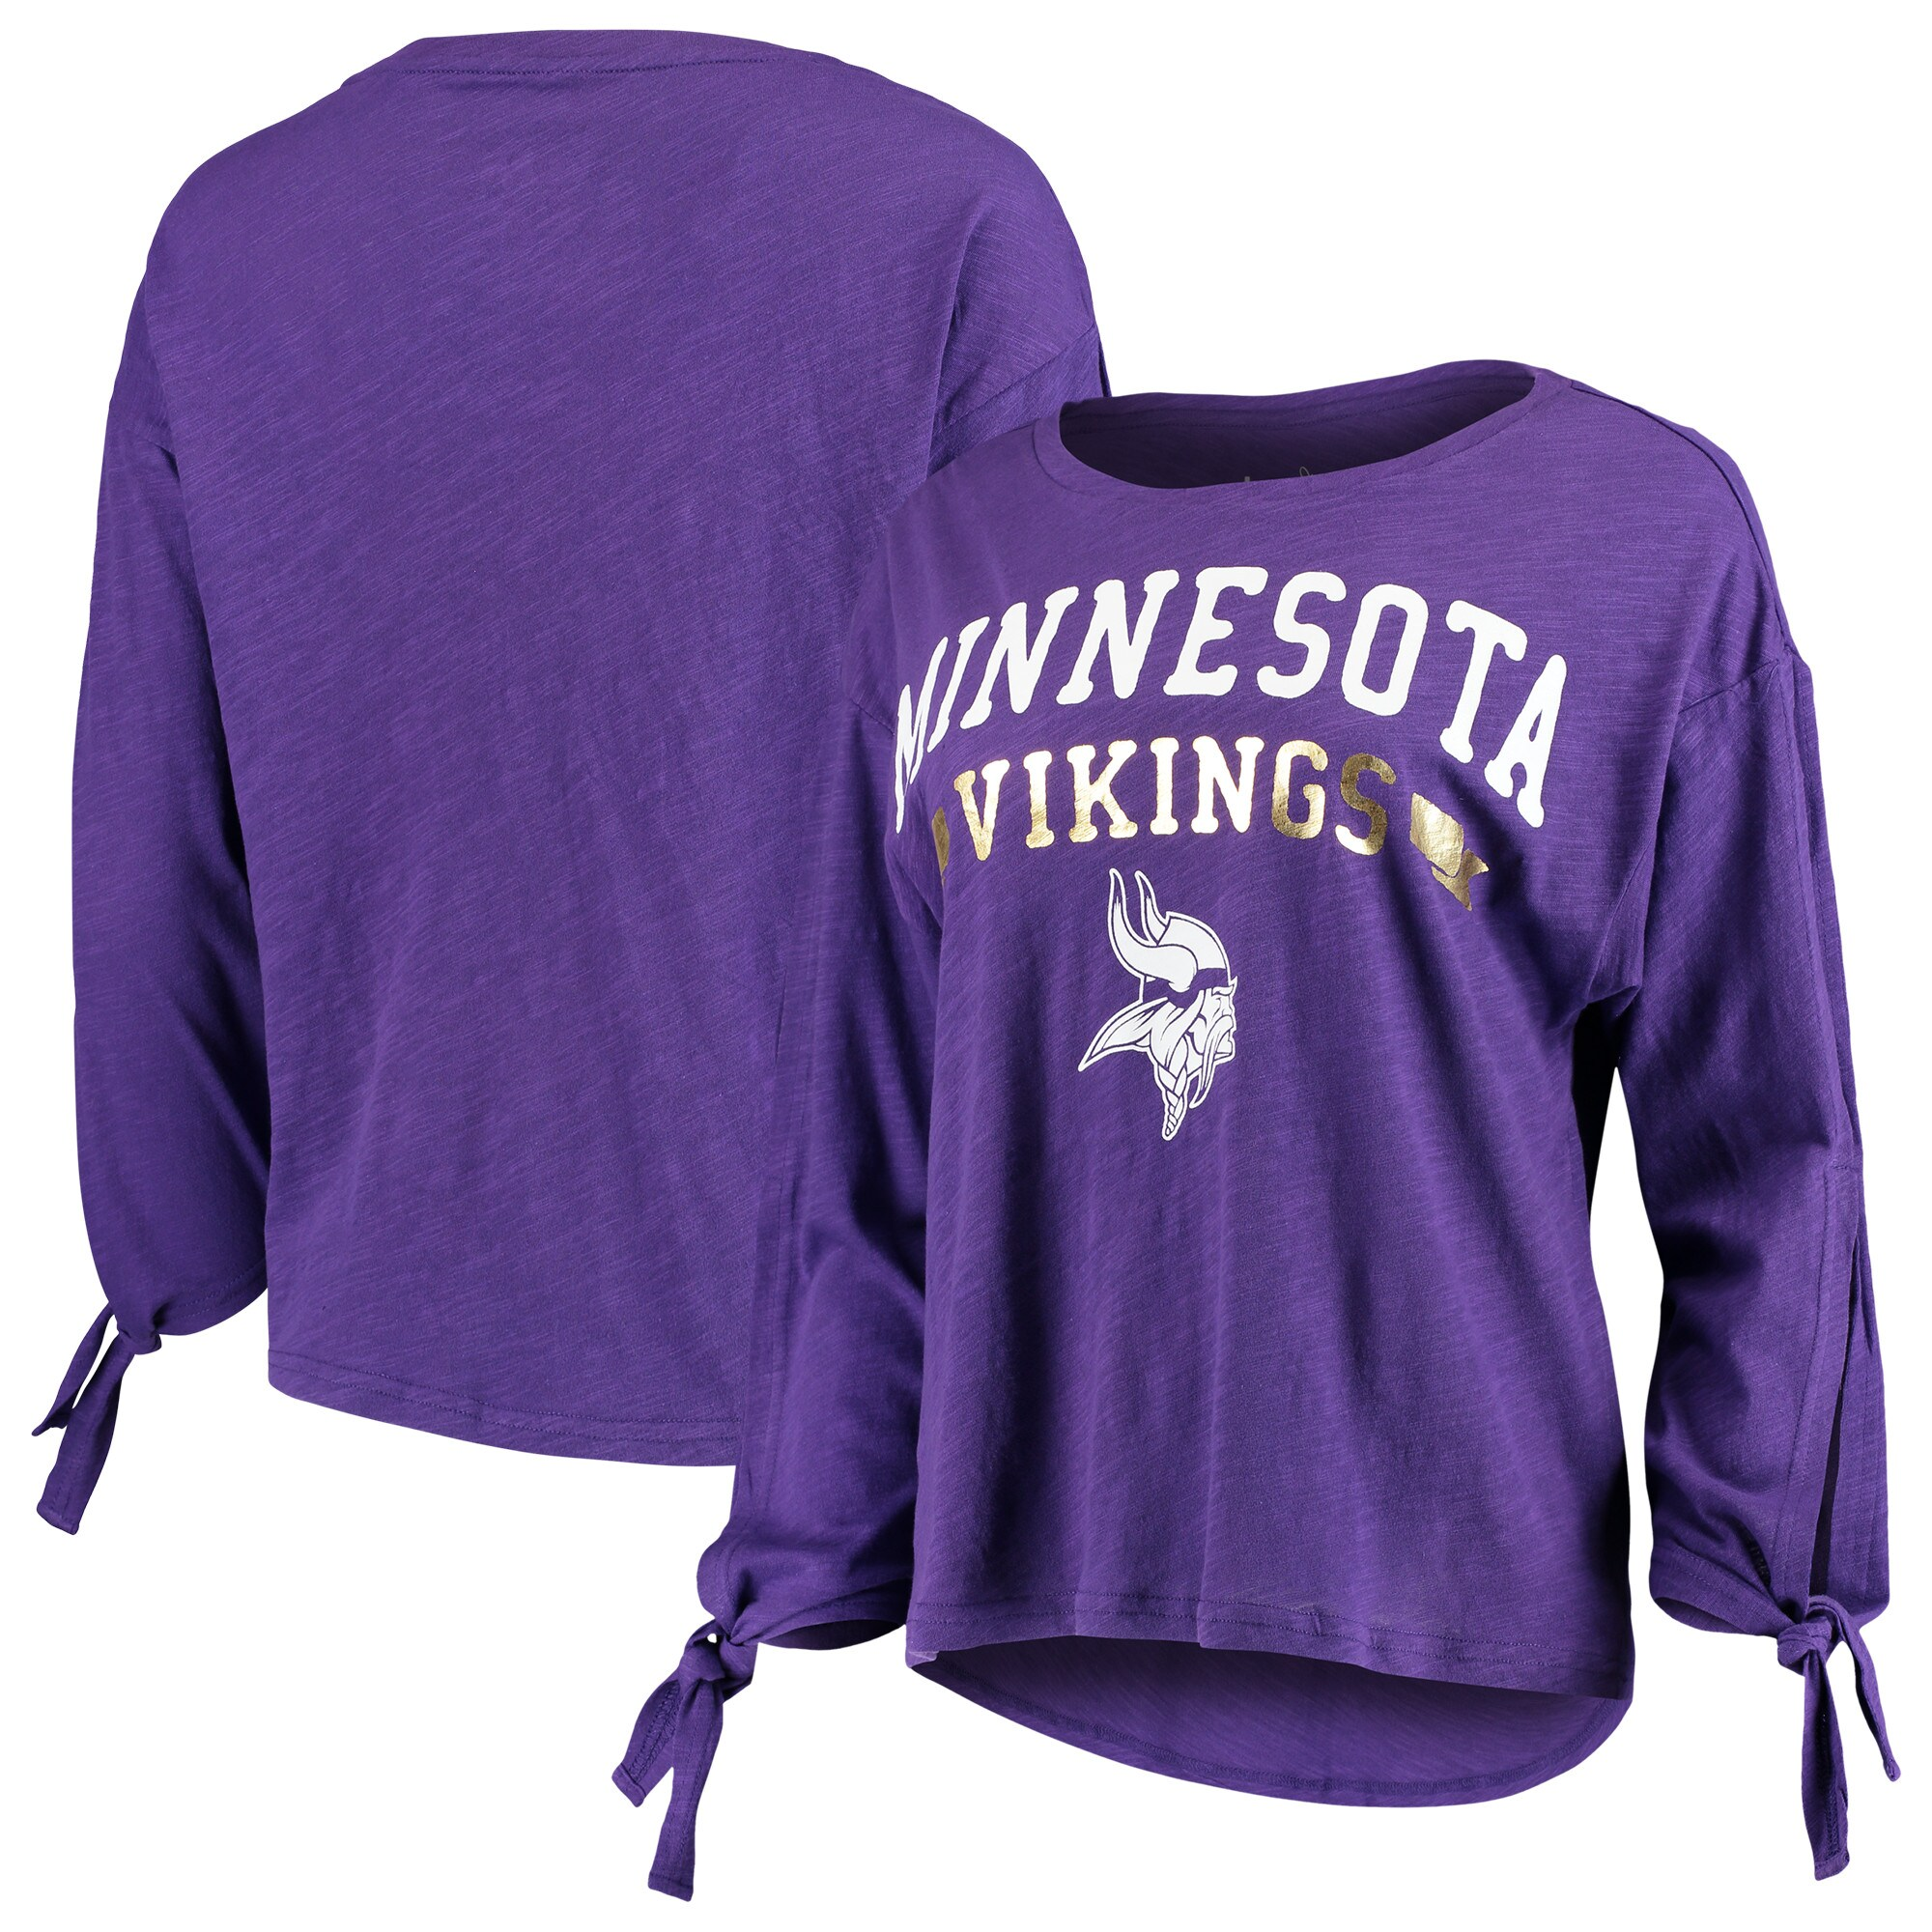 Minnesota Vikings Touch by Alyssa Milano Women's On The Fly Long Sleeve T-Shirt - Purple